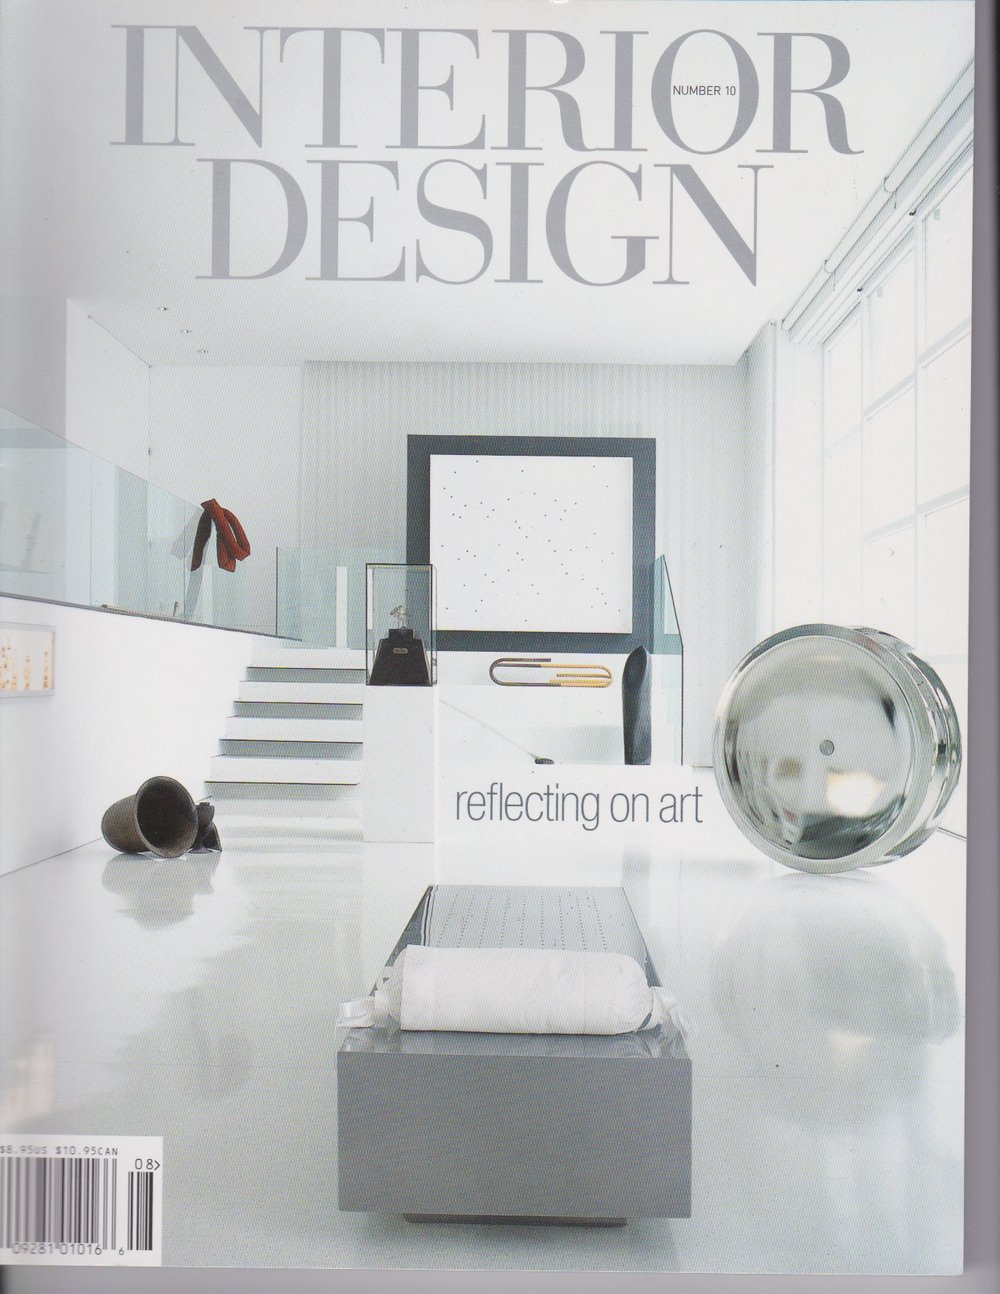 Interior Design cover.jpeg